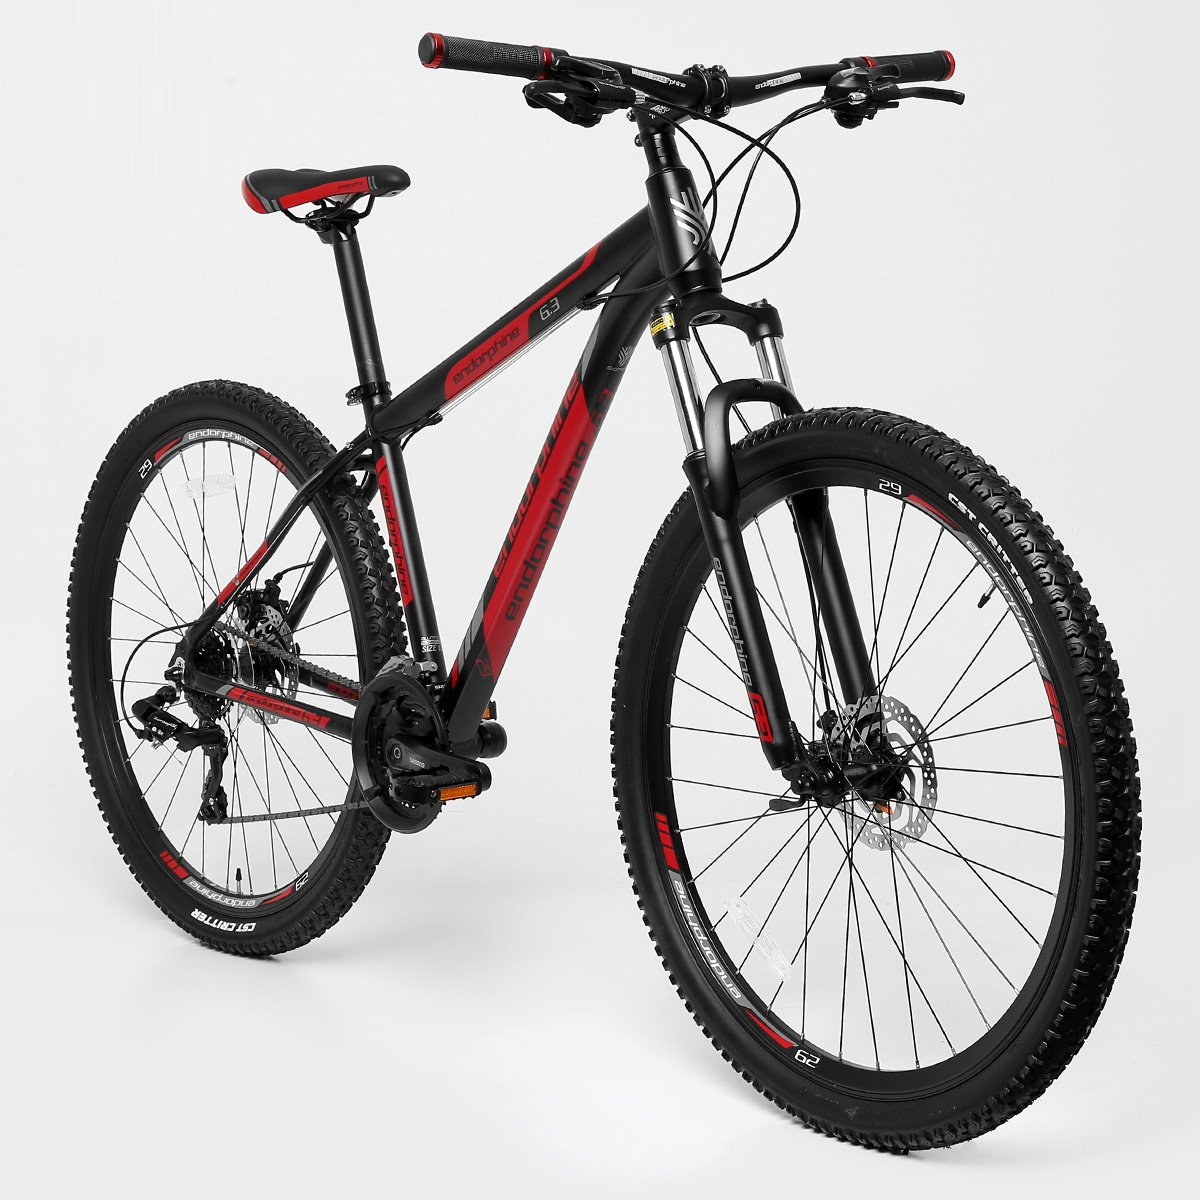 bicicleta aro 29 mountain bike gonew endorphine 6 3 24 marchas shimano alum nio compre. Black Bedroom Furniture Sets. Home Design Ideas